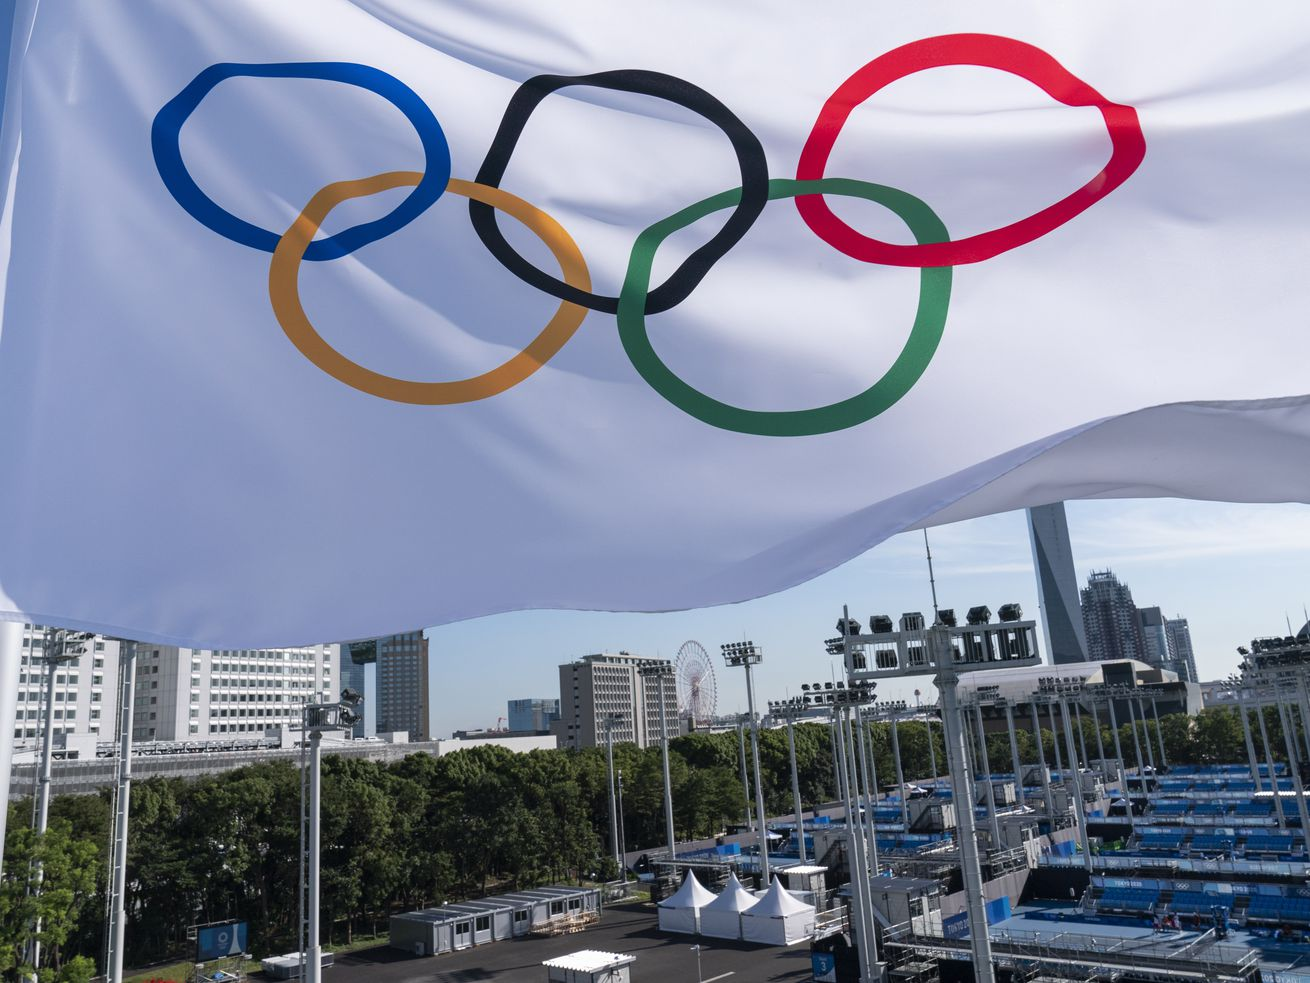 The 2021 Tokyo Olympics have been called into question for several reasons.